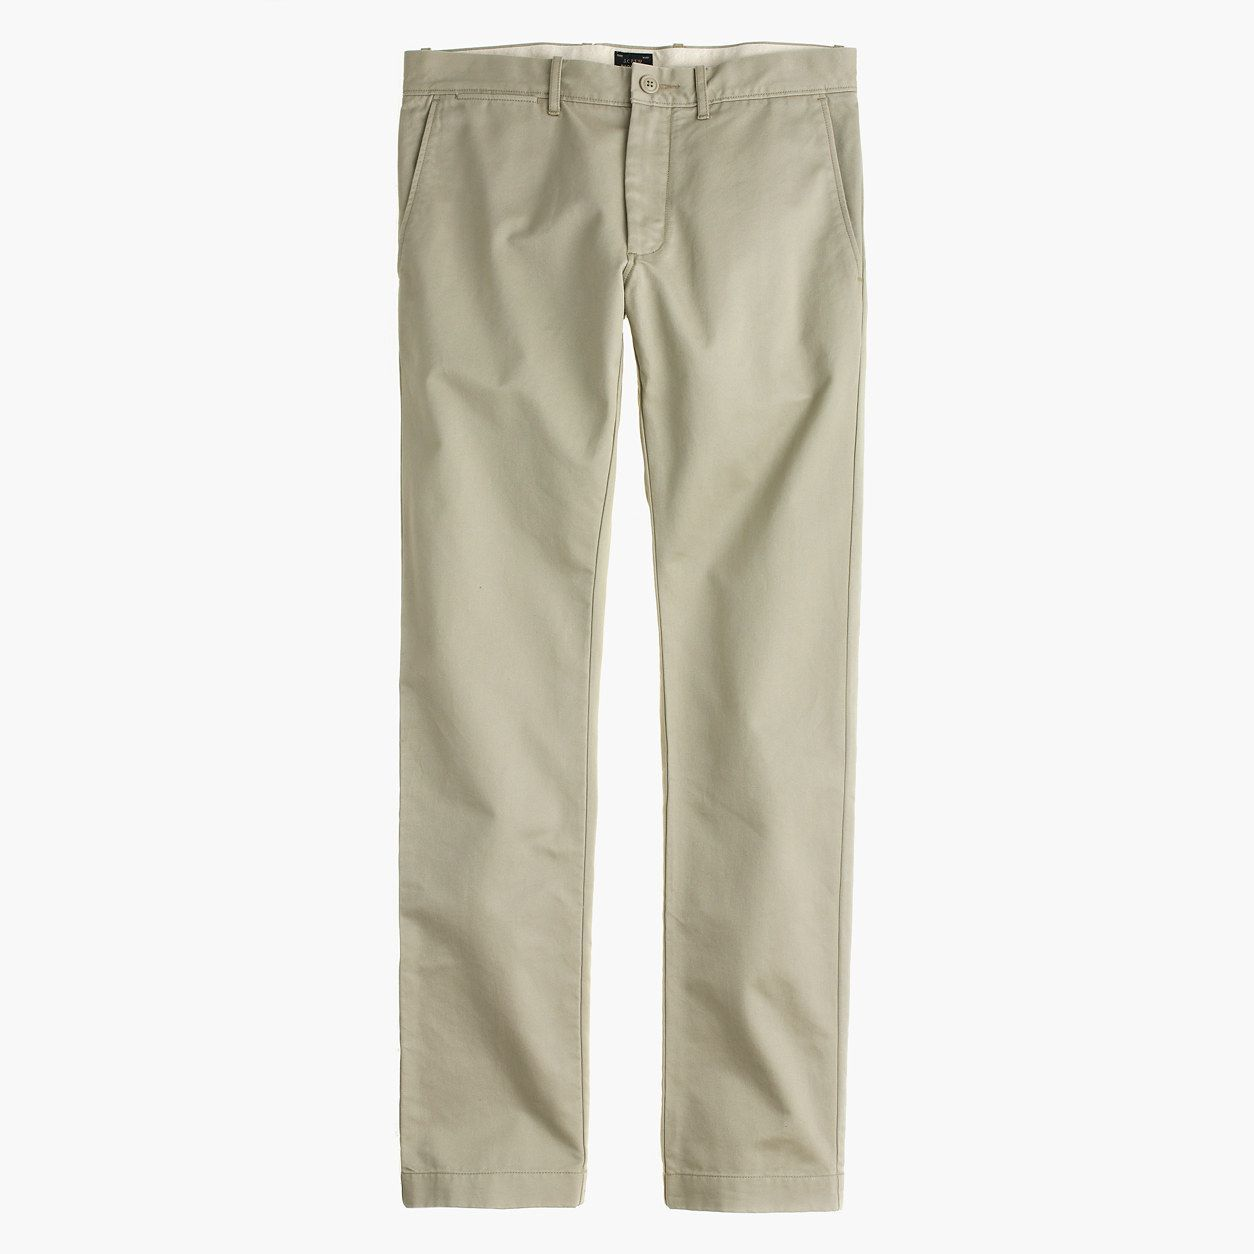 J.Crew Mens Broken-In Chino Pant In 484 Slim Fit (Size 28x32)